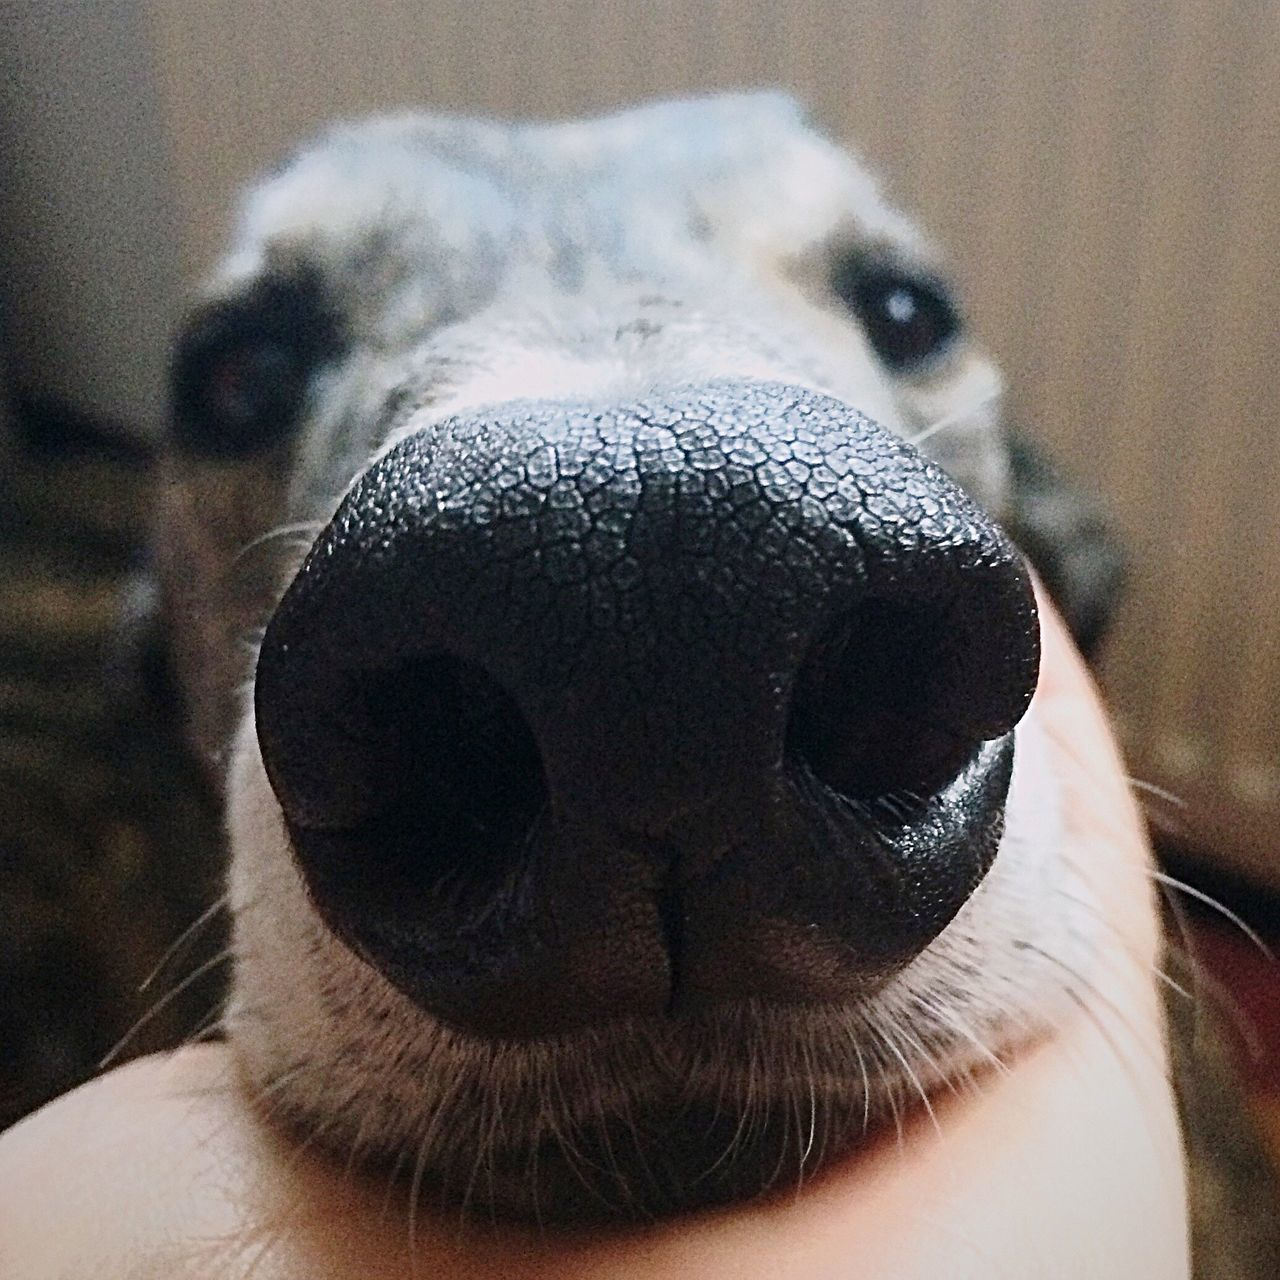 Hey look at me! • Looking At Camera Domestic Animals One Animal Animal Themes Animal Body Part Close-up Portrait Mammal Animal Head  Animal Nose Focus On Foreground Pets Dog Greyhound Nose